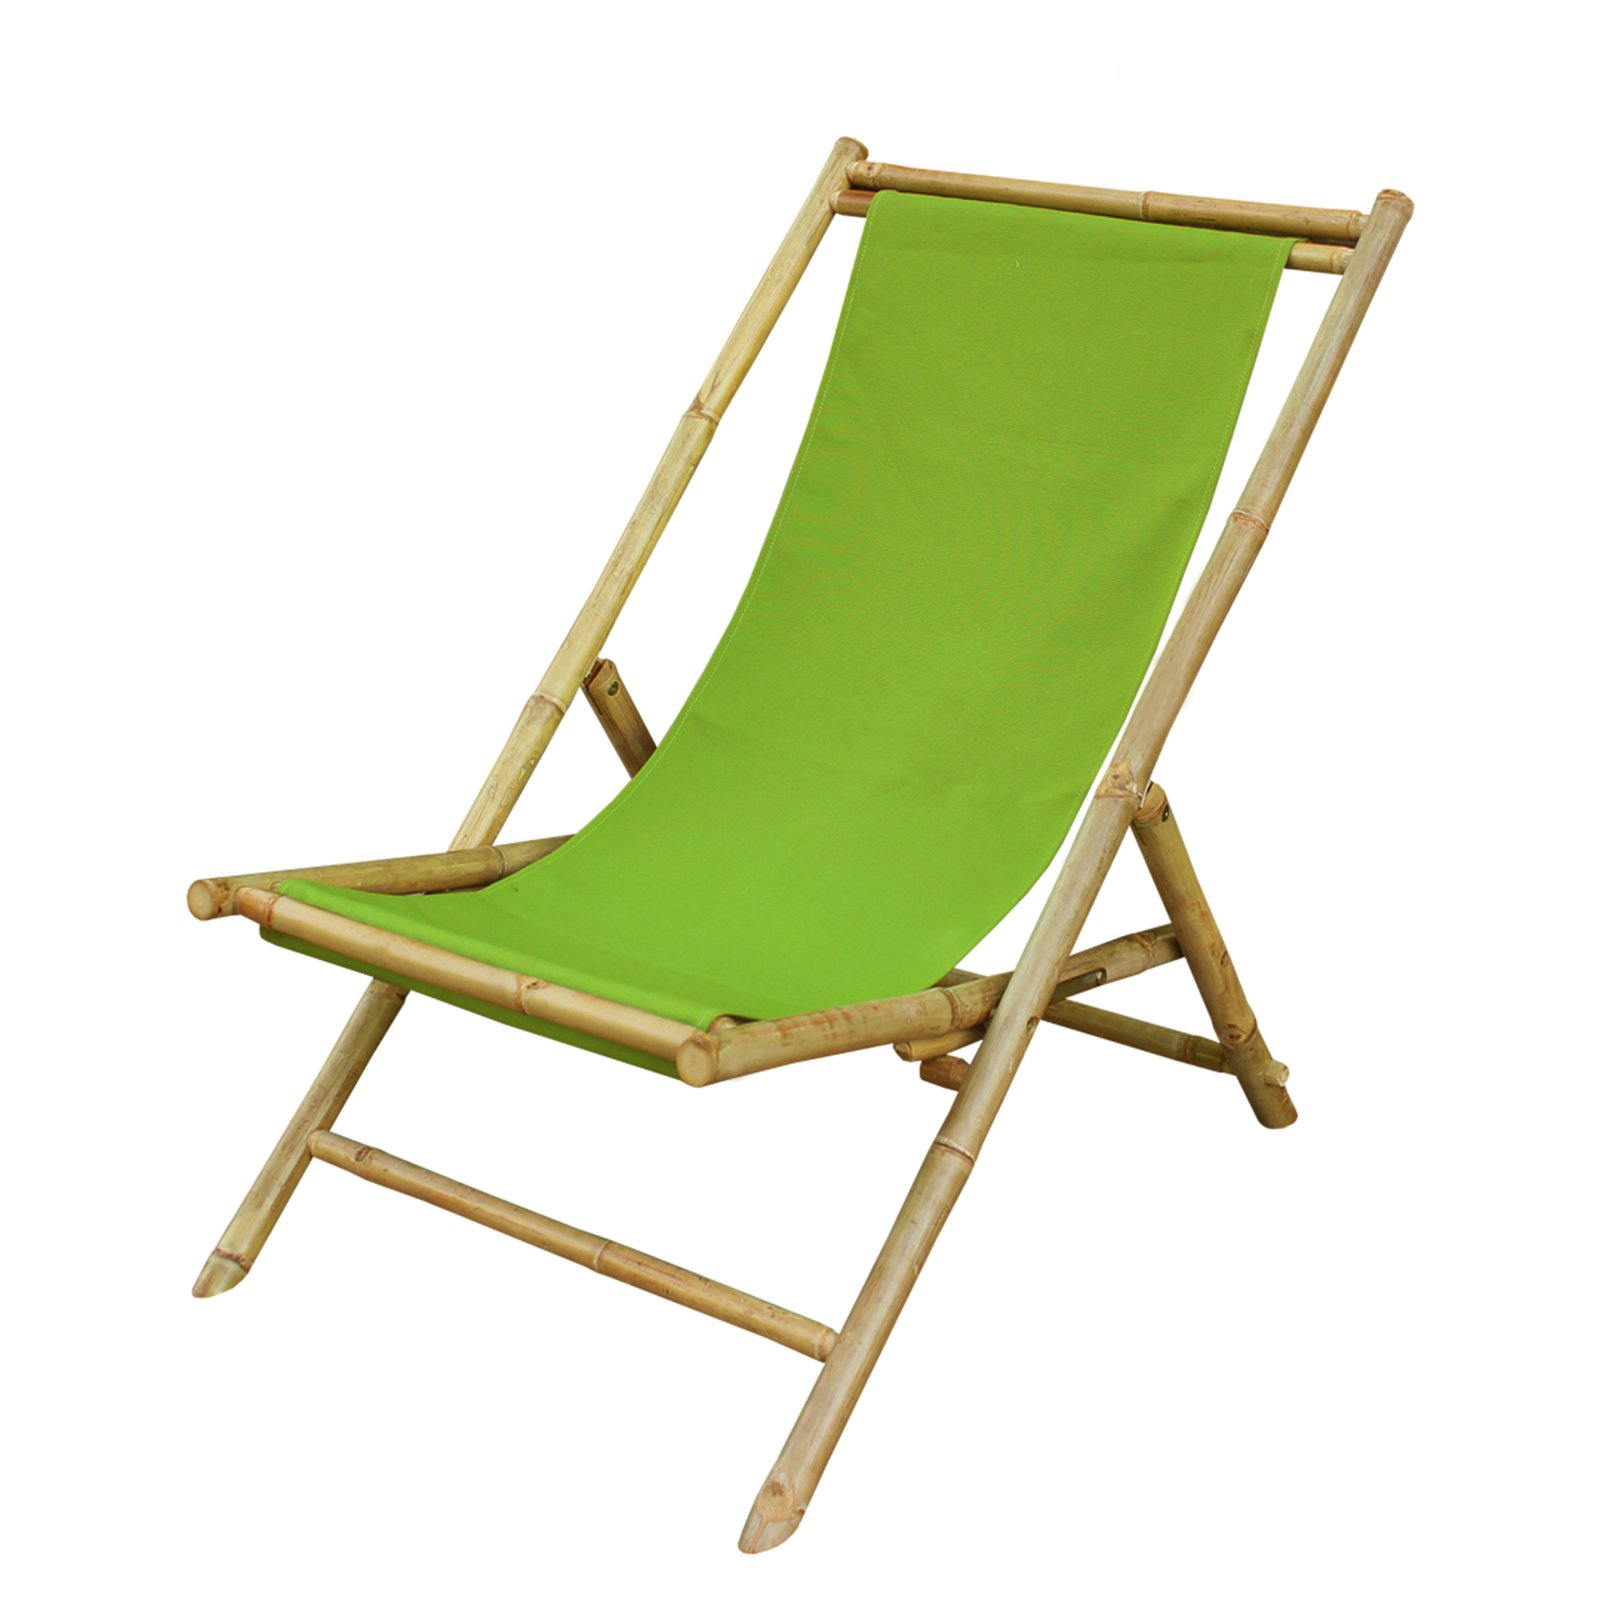 canvas sling chair childrens wooden rocking chairs sale statra folding bamboo relax walmart com